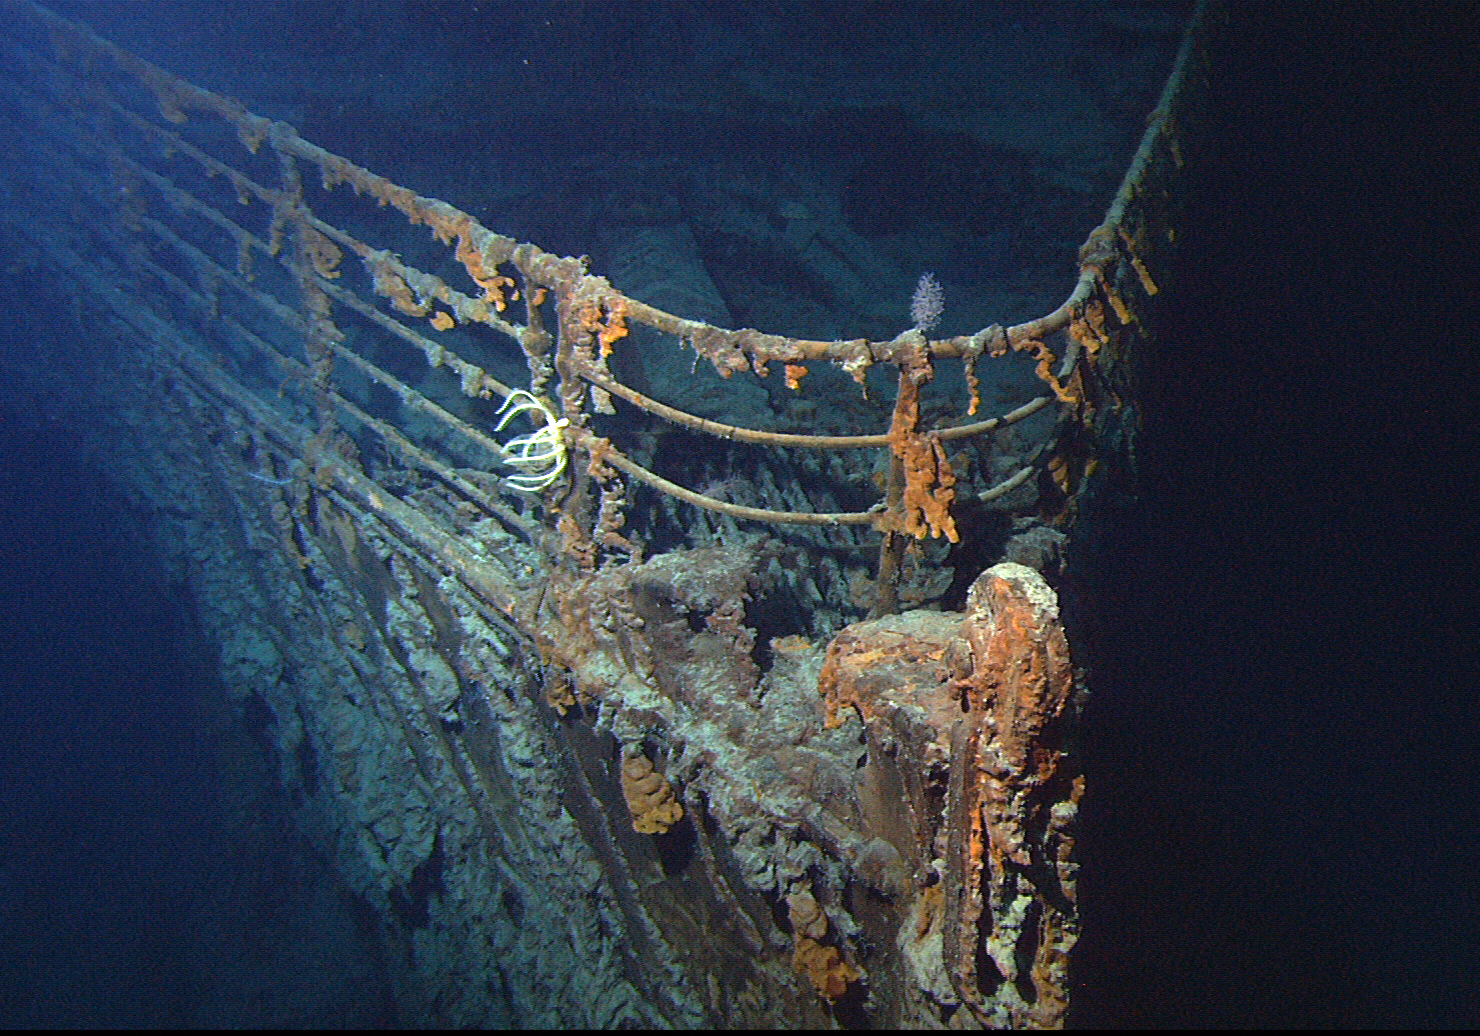 https://i2.wp.com/upload.wikimedia.org/wikipedia/commons/9/9c/Titanic_wreck_bow.jpg